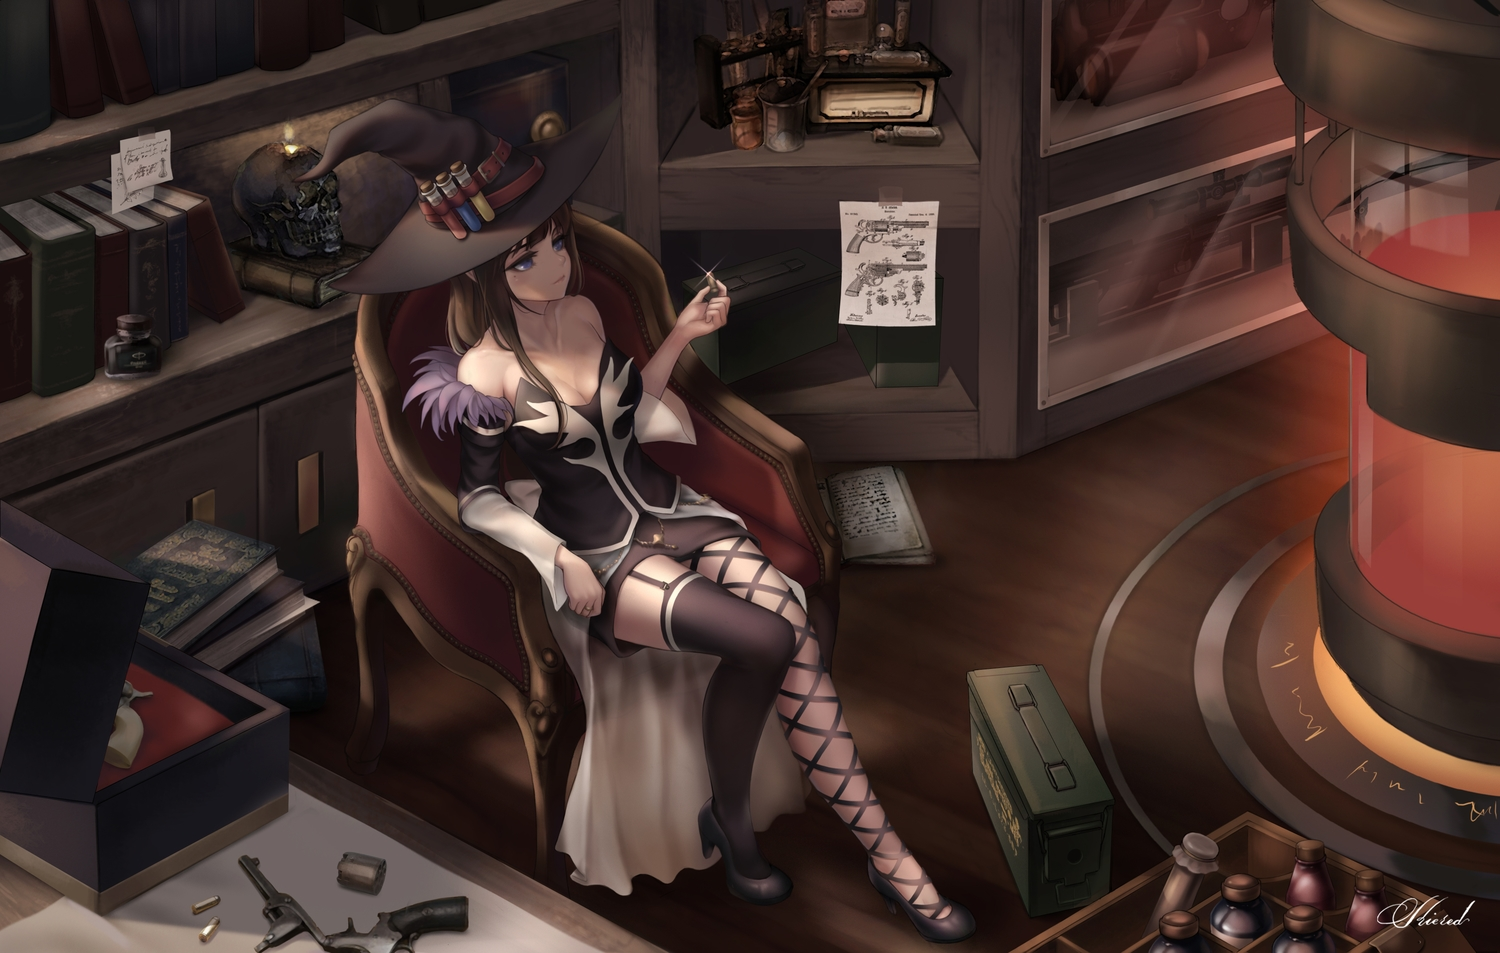 brown_hair dungeon_and_fighter female_mage_(dnf) gun hat kie_(wylee2212) long_hair skirt stockings weapon witch witch_hat